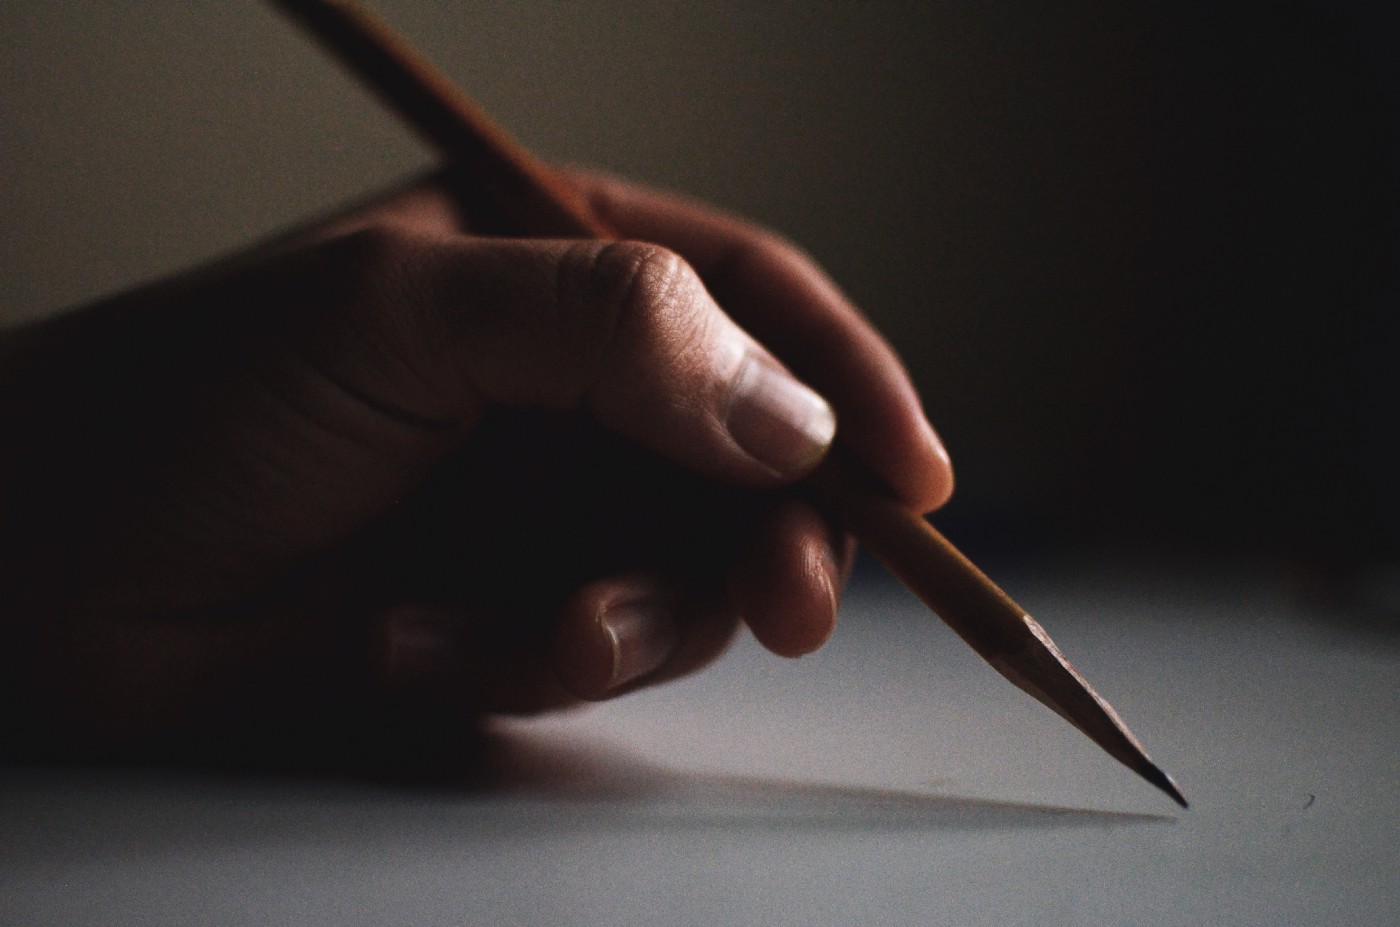 photo of a woman's hand holding a sharpened pencil